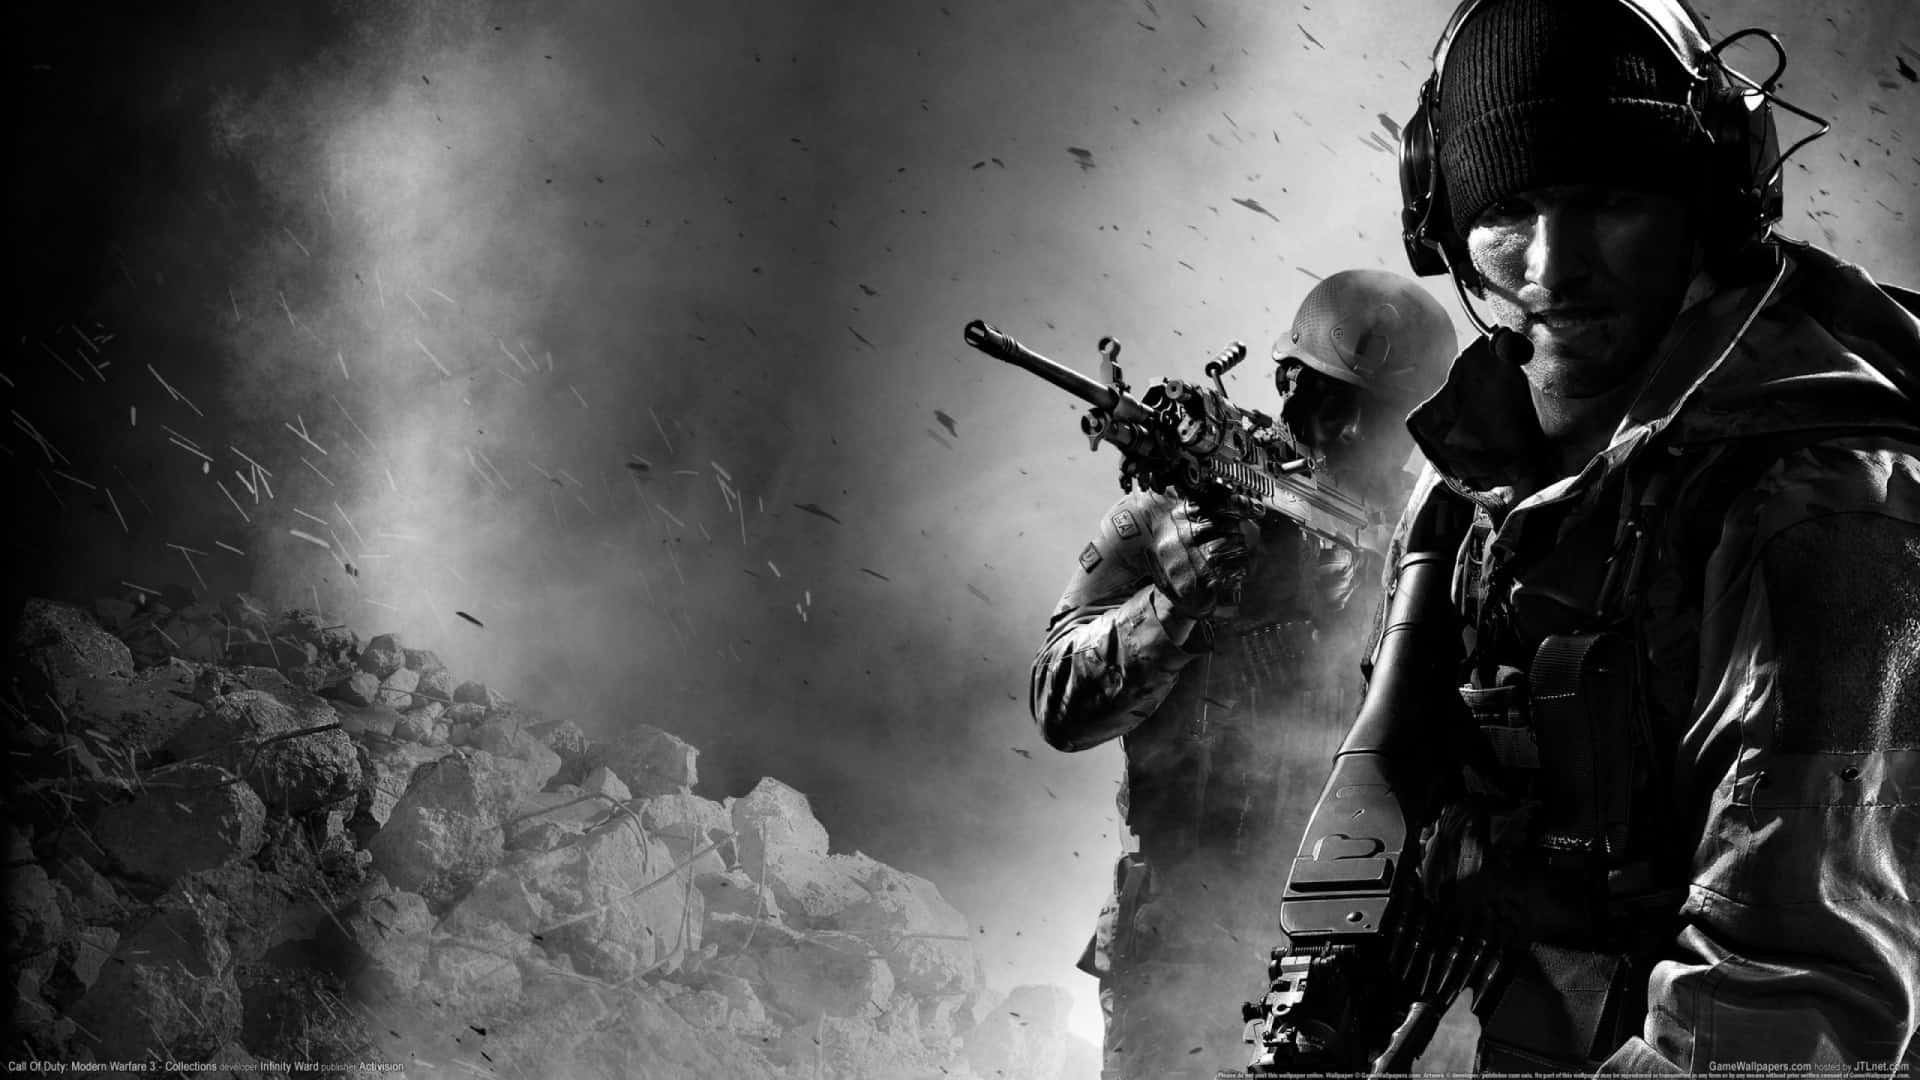 Call of Duty Wallpaper 020